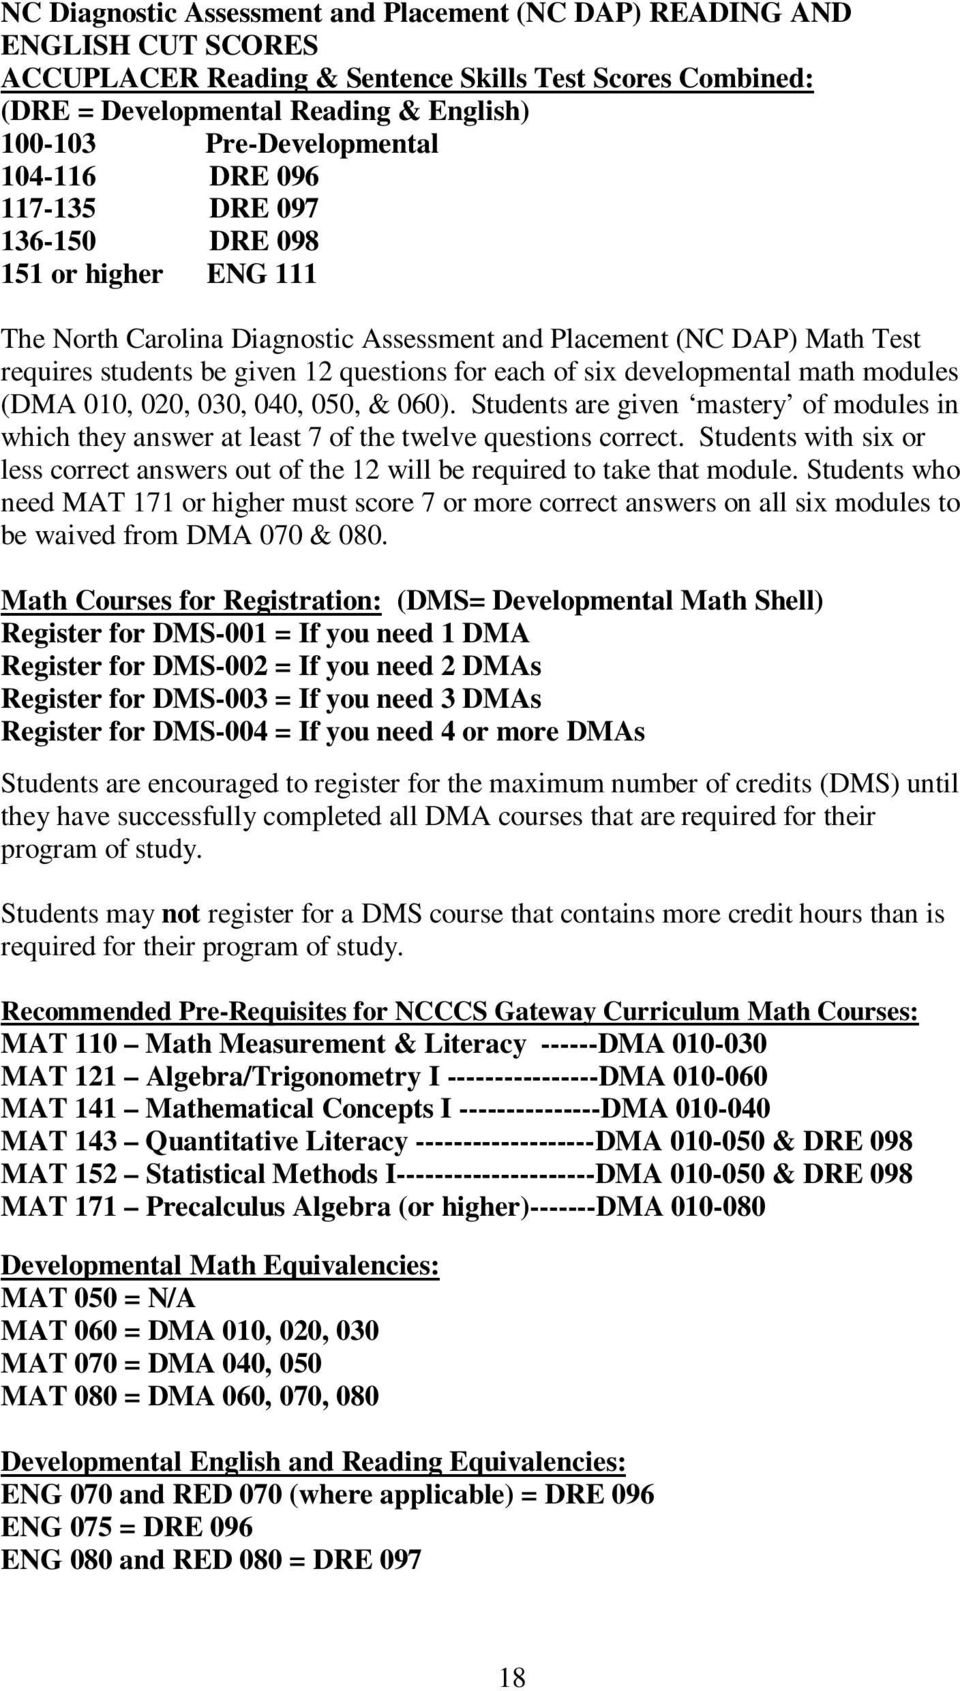 questions for each of six developmental math modules (DMA 010, 020, 030, 040, 050, & 060). Students are given mastery of modules in which they answer at least 7 of the twelve questions correct.